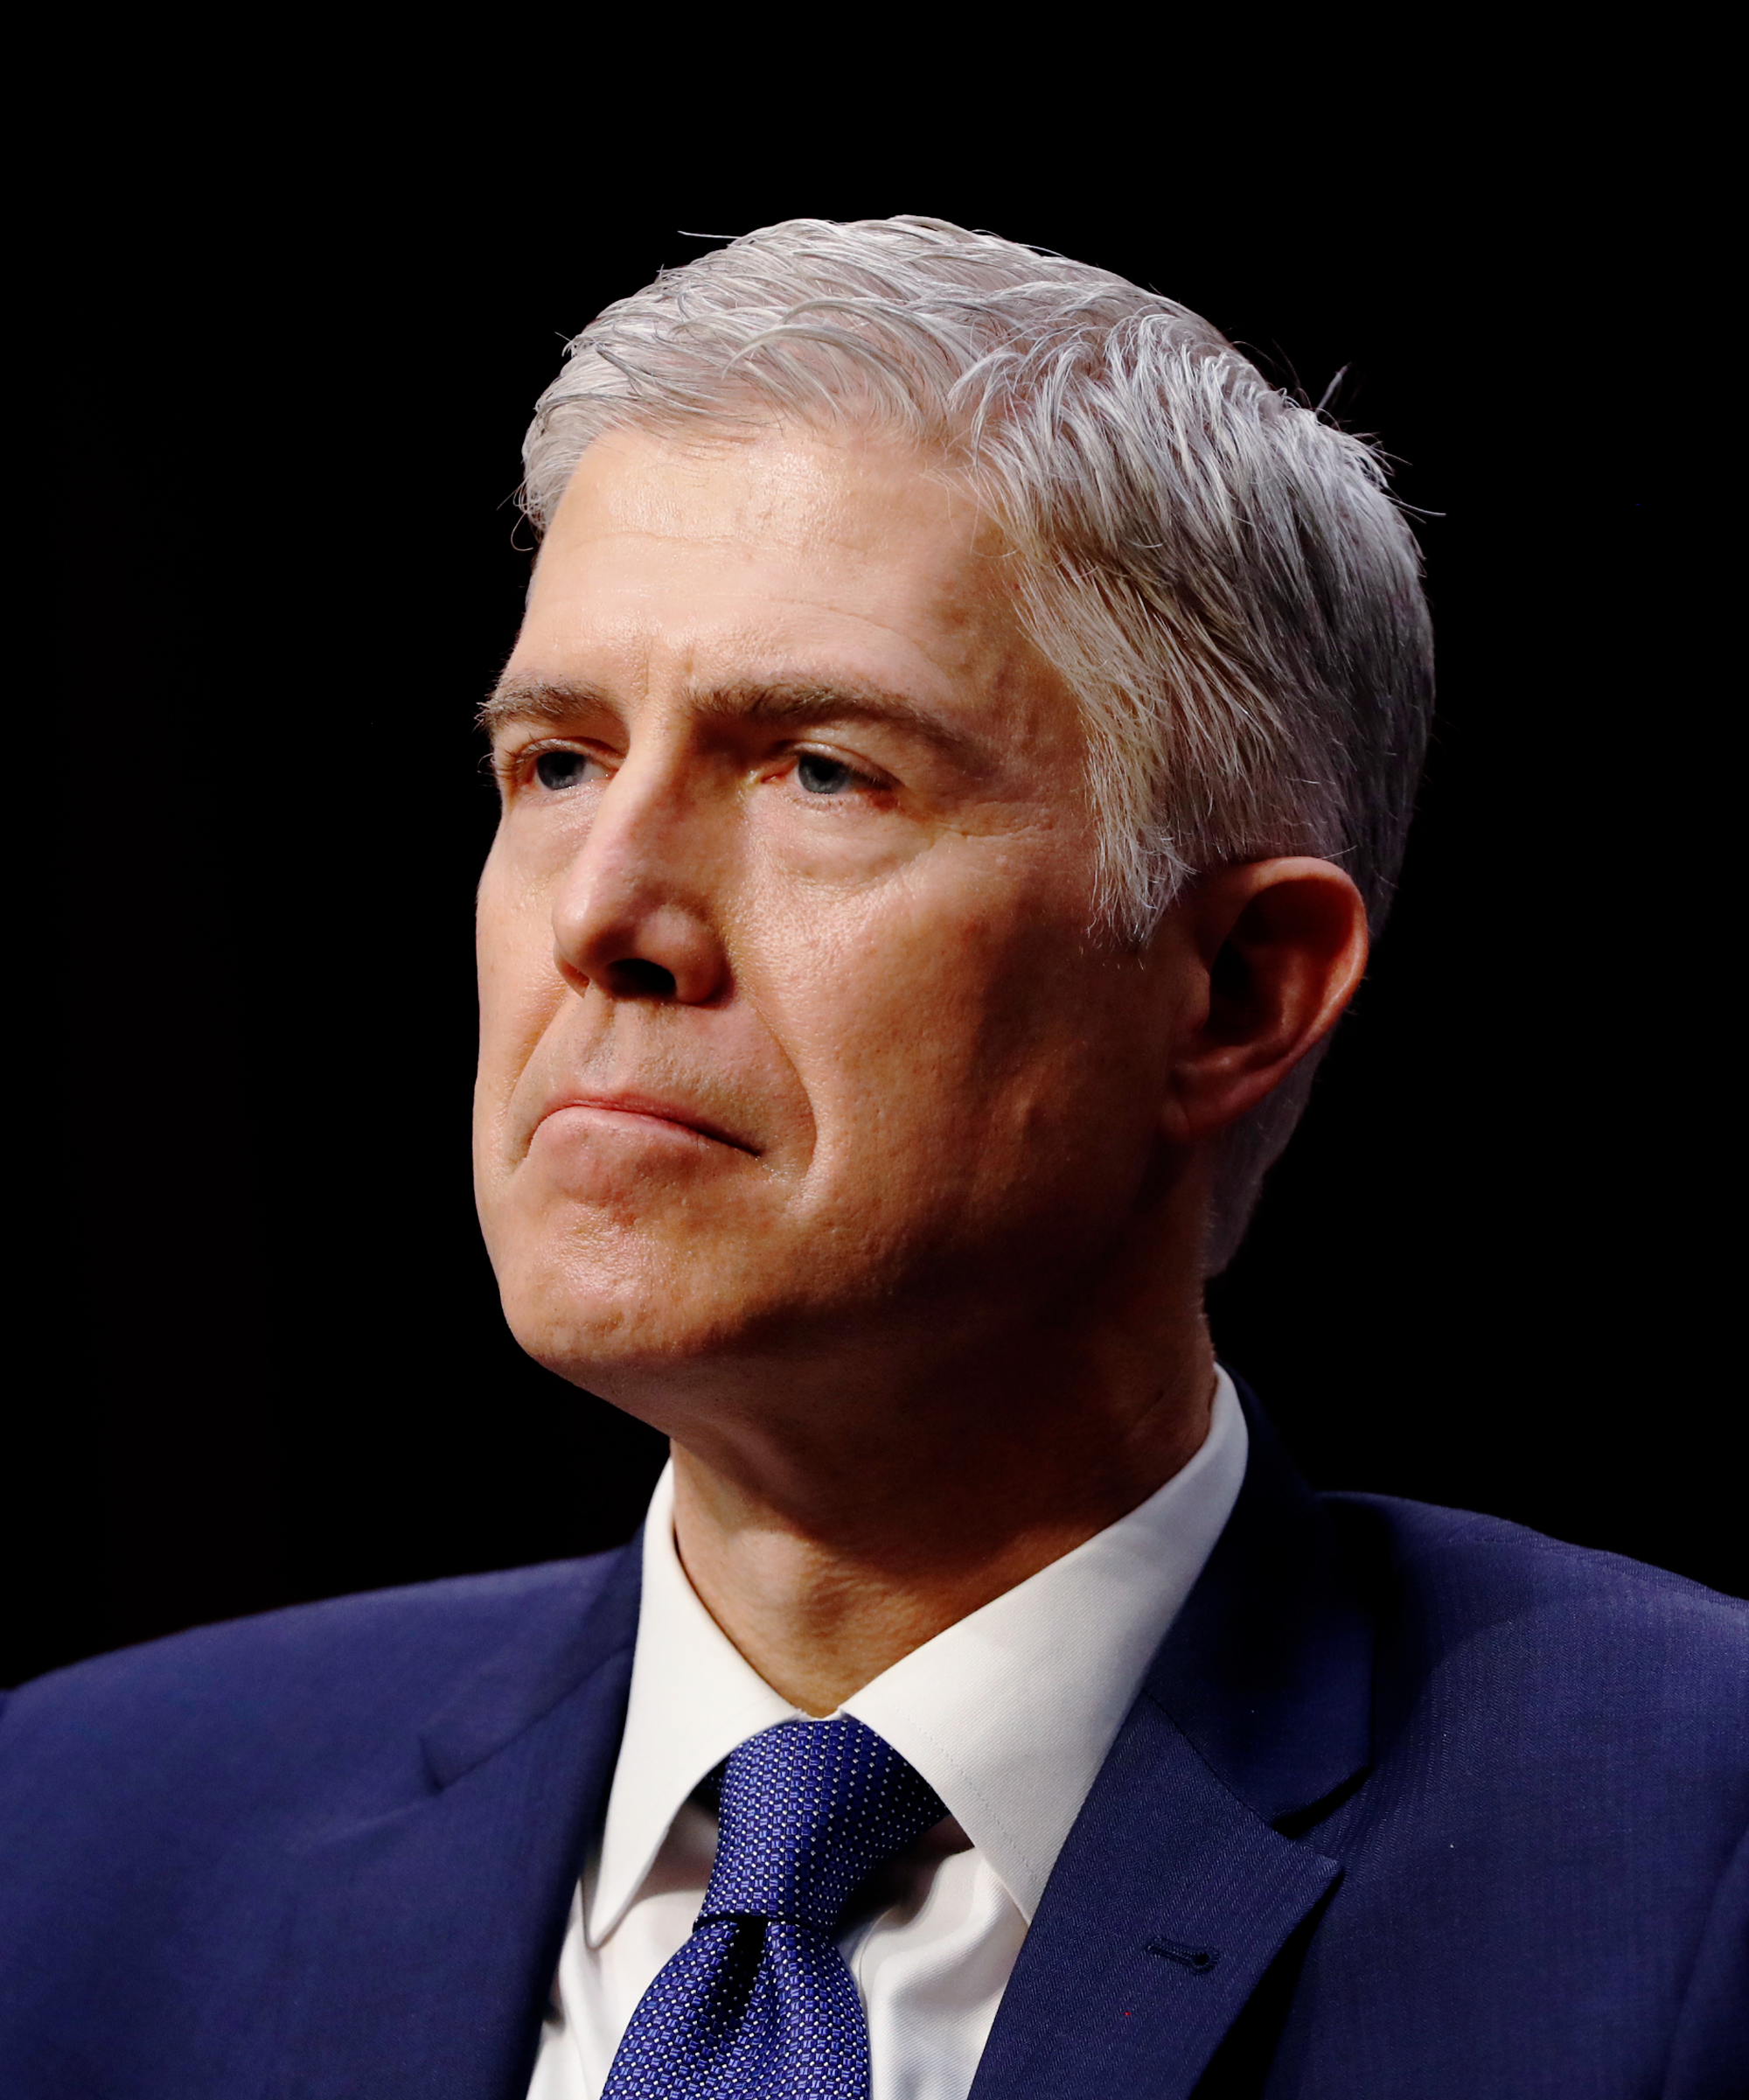 Gorsuch Confirmed to Supreme Court After Major Senate Rule Change